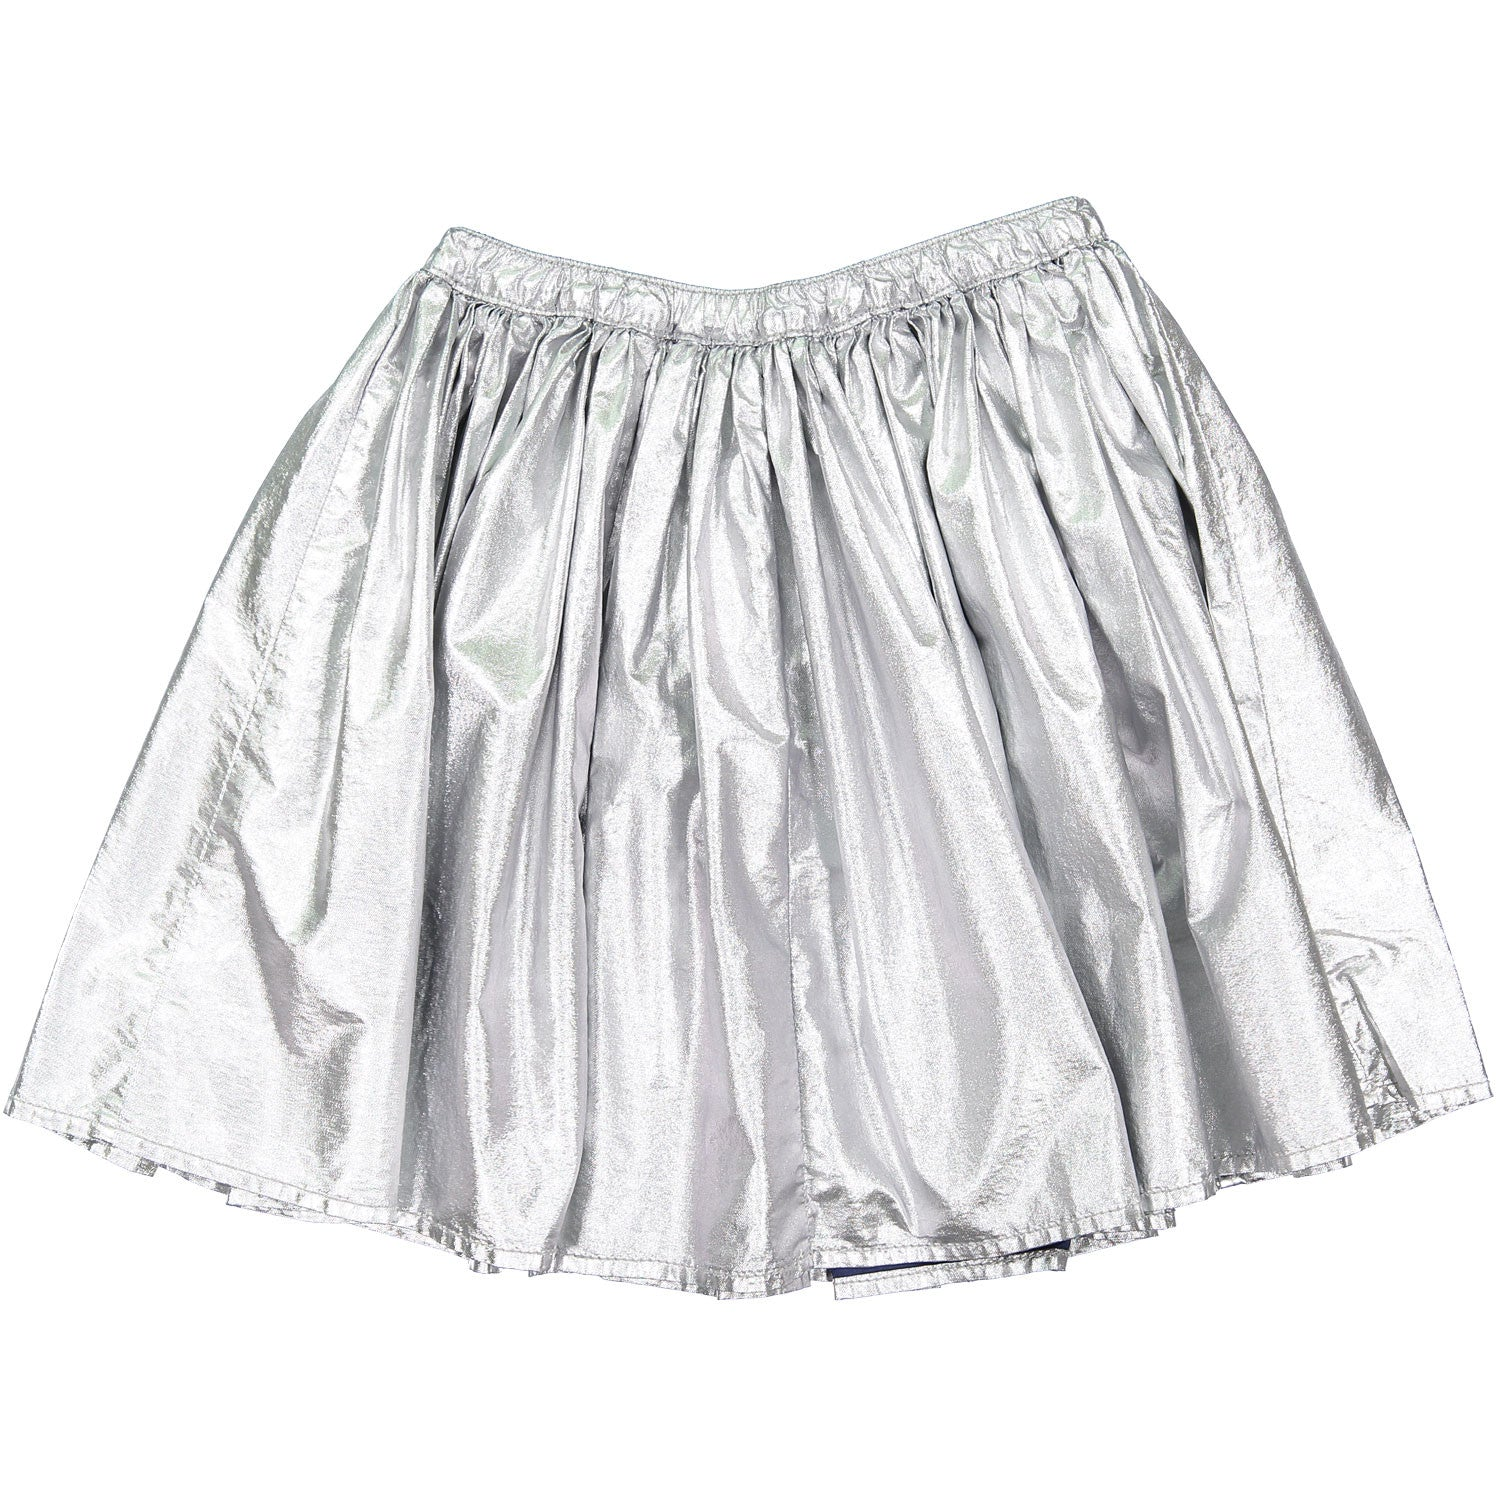 Maan Silver Flared Skirt - Ladida